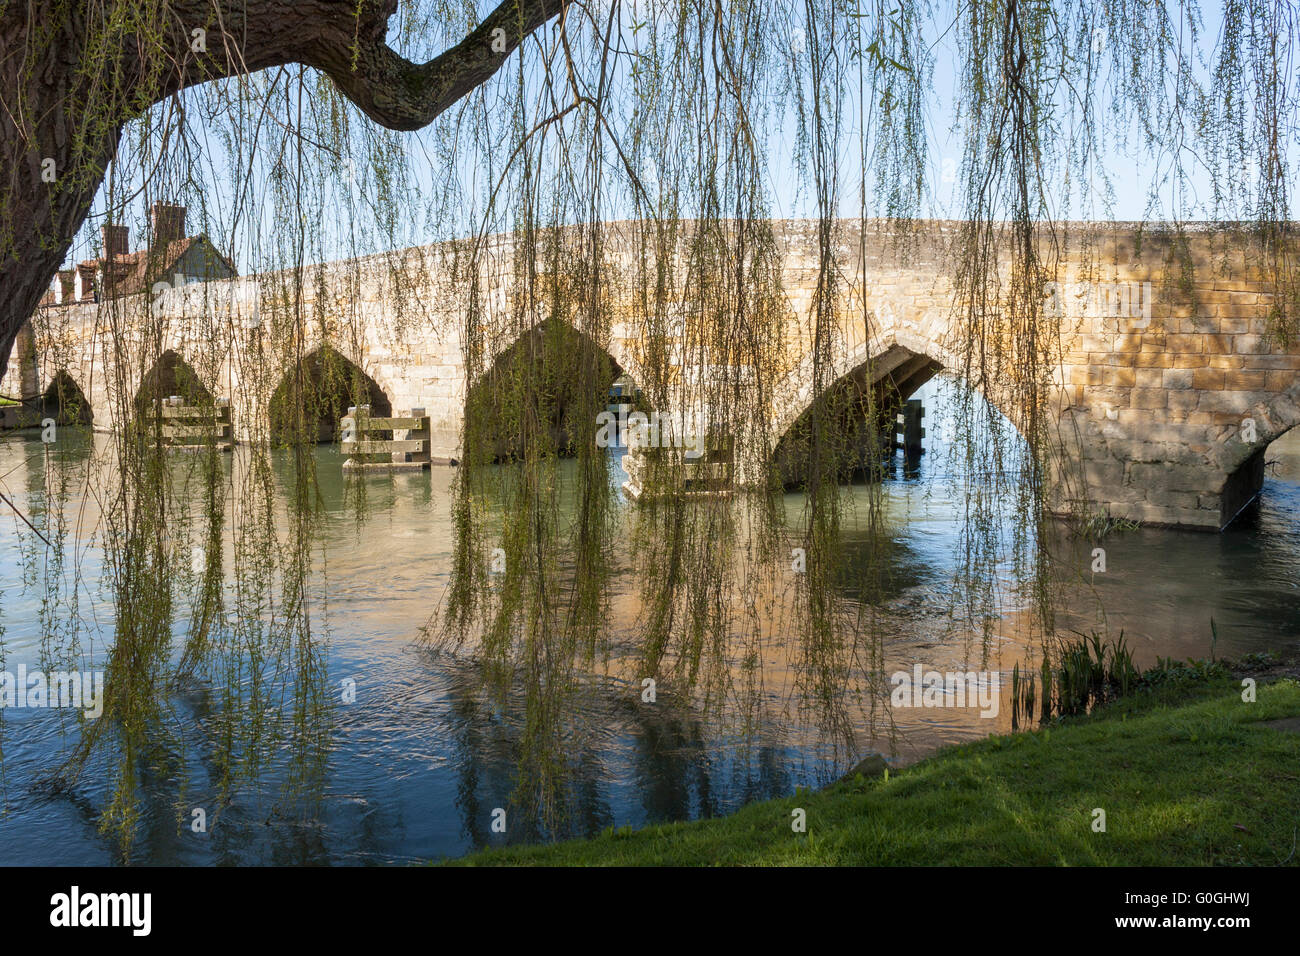 New Bridge is a 13th-century bridge, a Grade I listed building which crosses the River Thames in Oxfordshire. - Stock Image